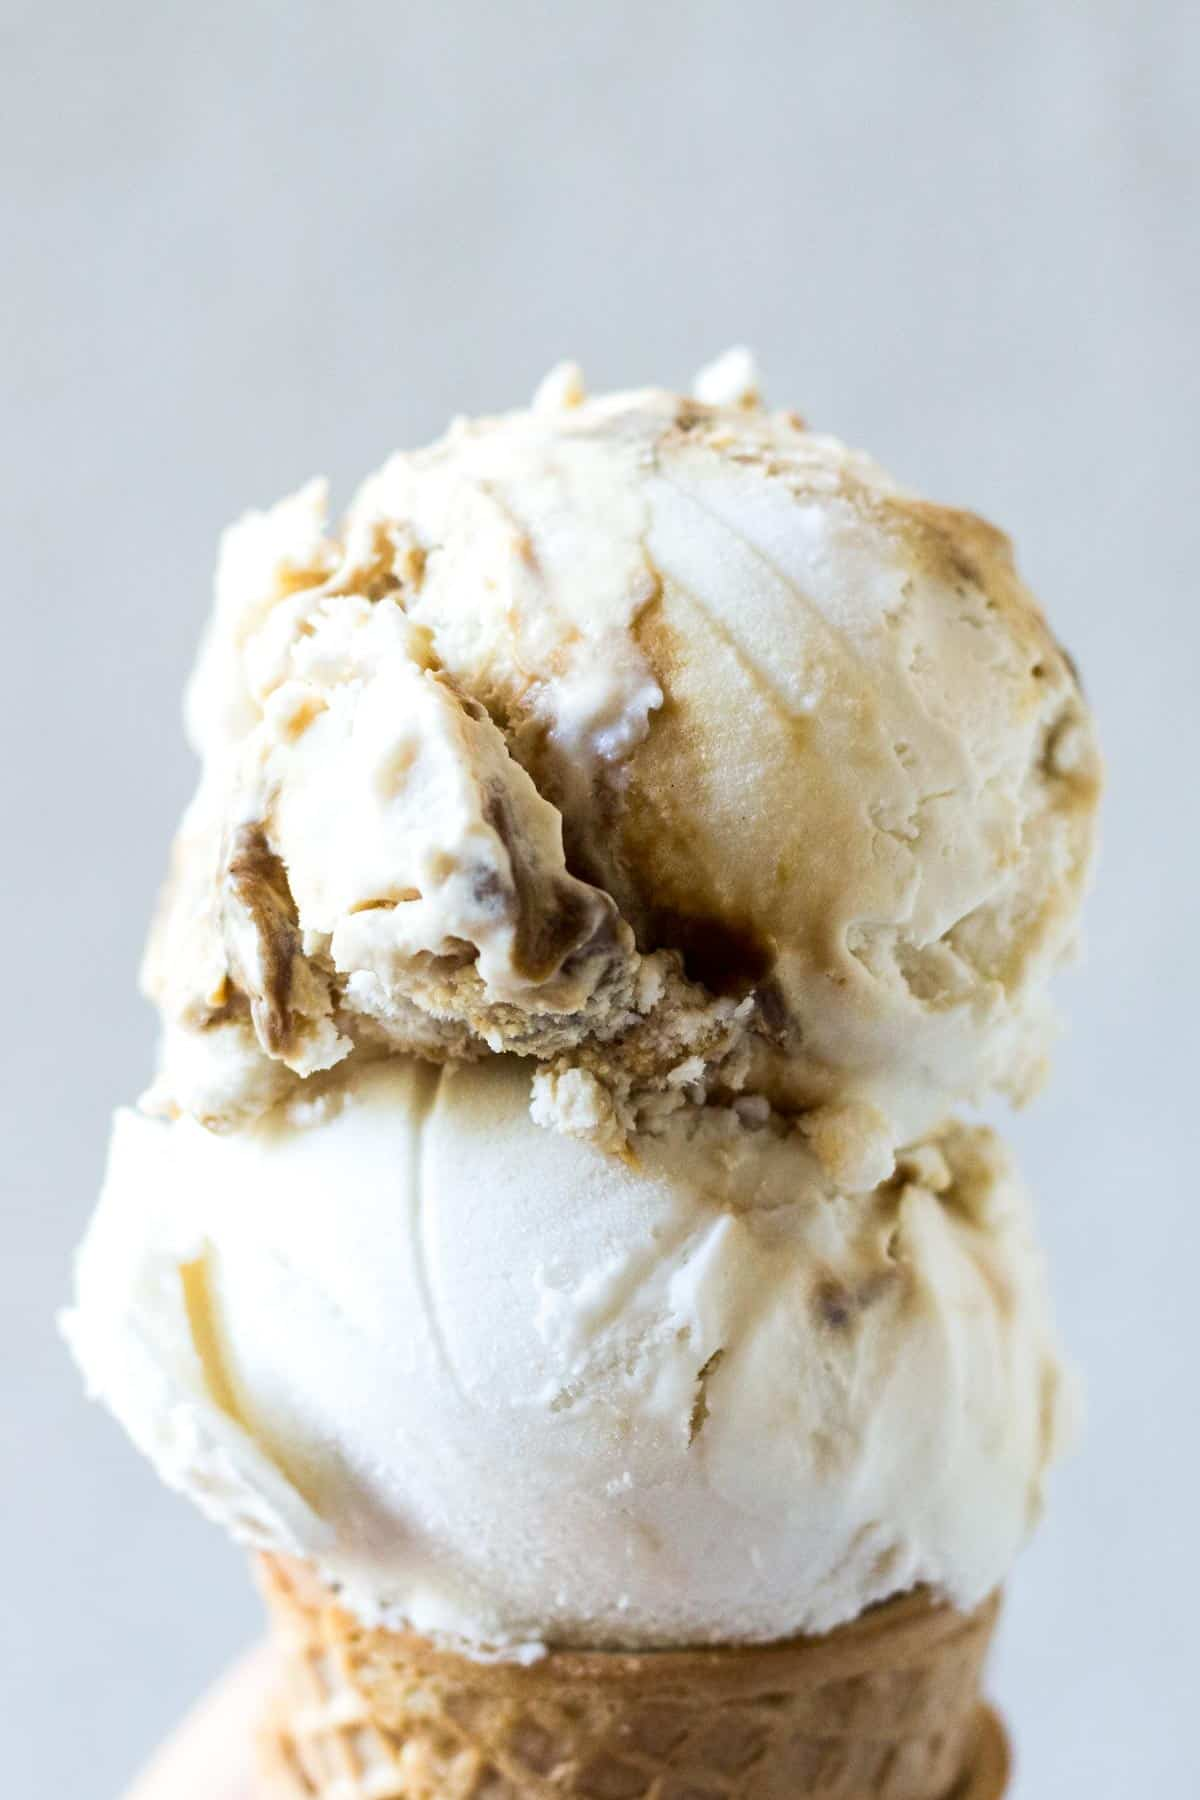 Salted Caramel Vegan Ice Cream